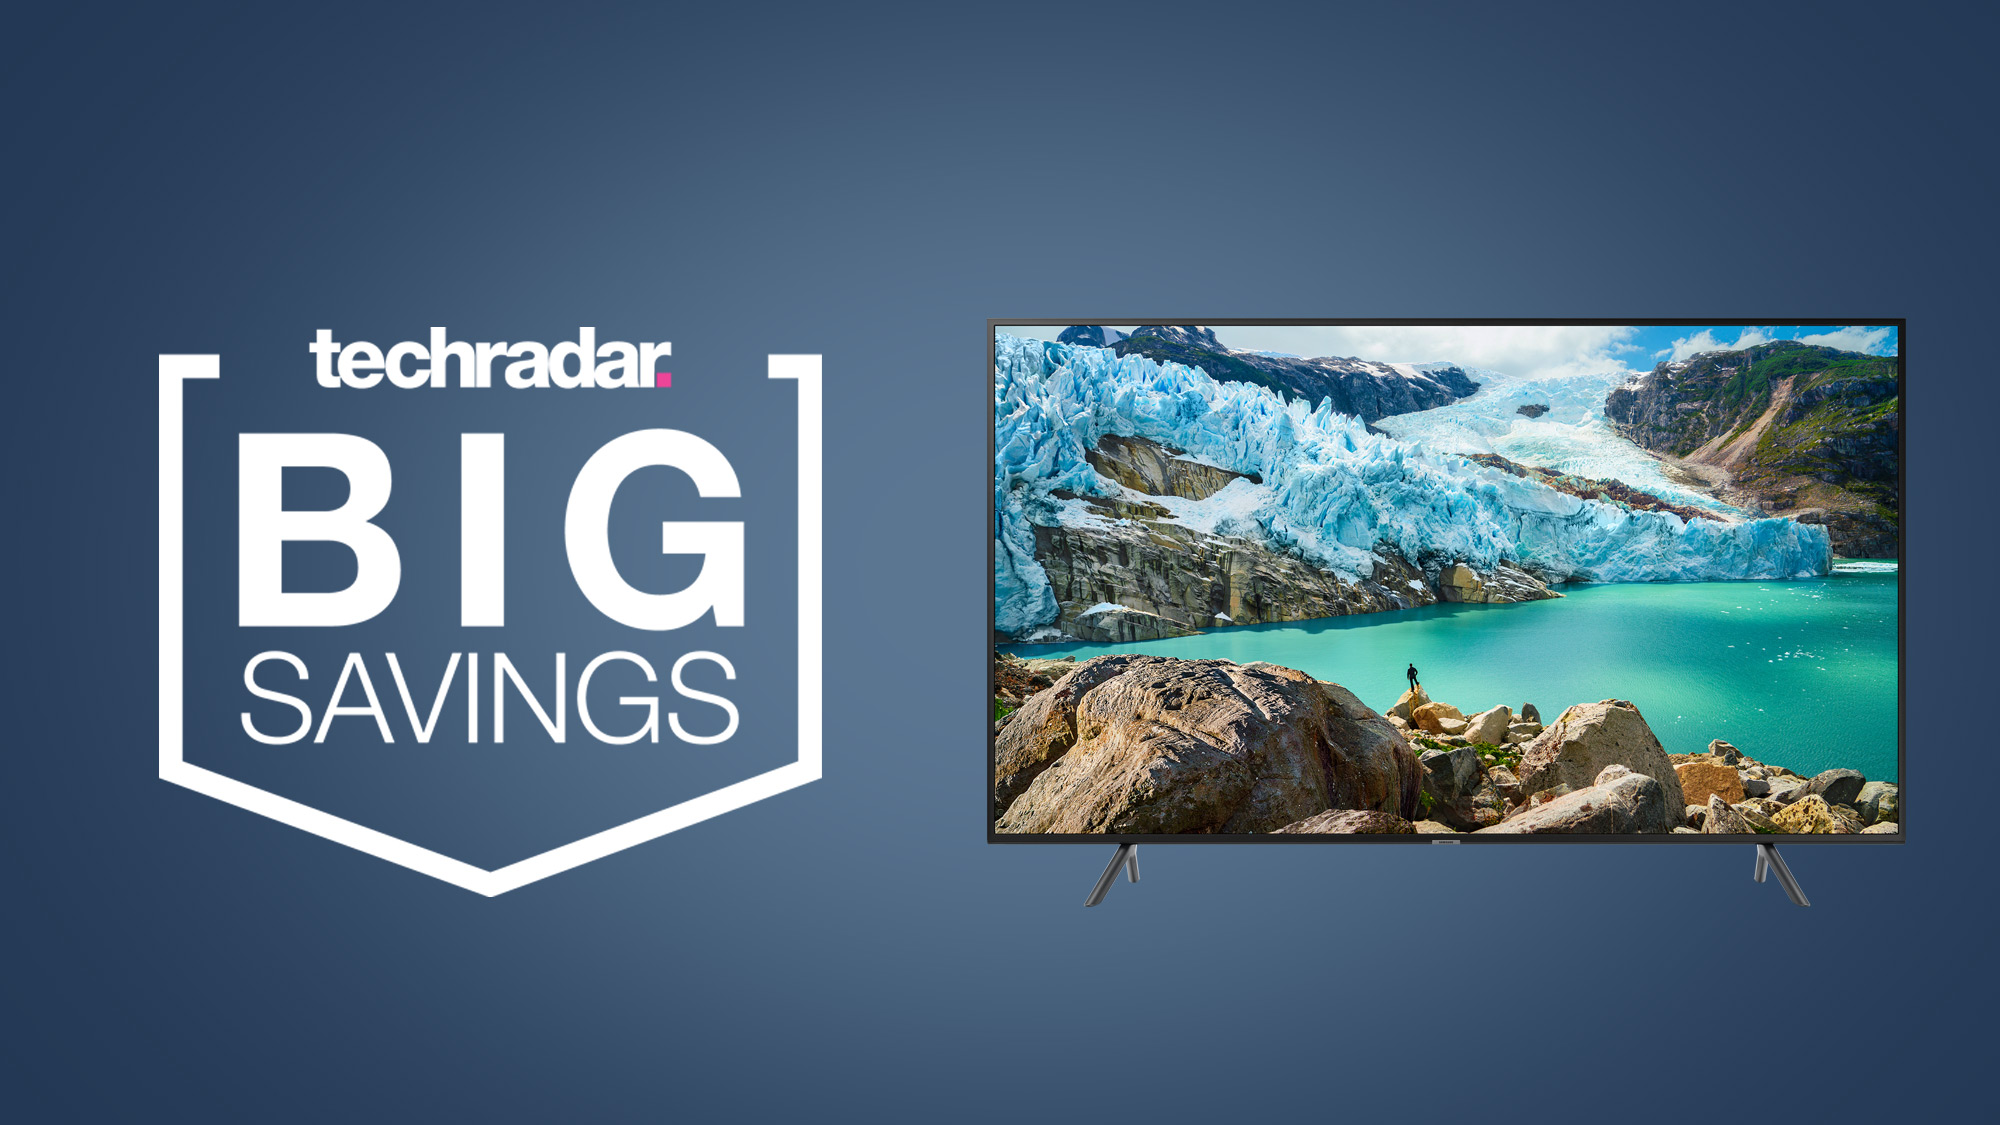 Samsung 4K TV deals are crashing in price this weekend - making it the perfect time to upgrade